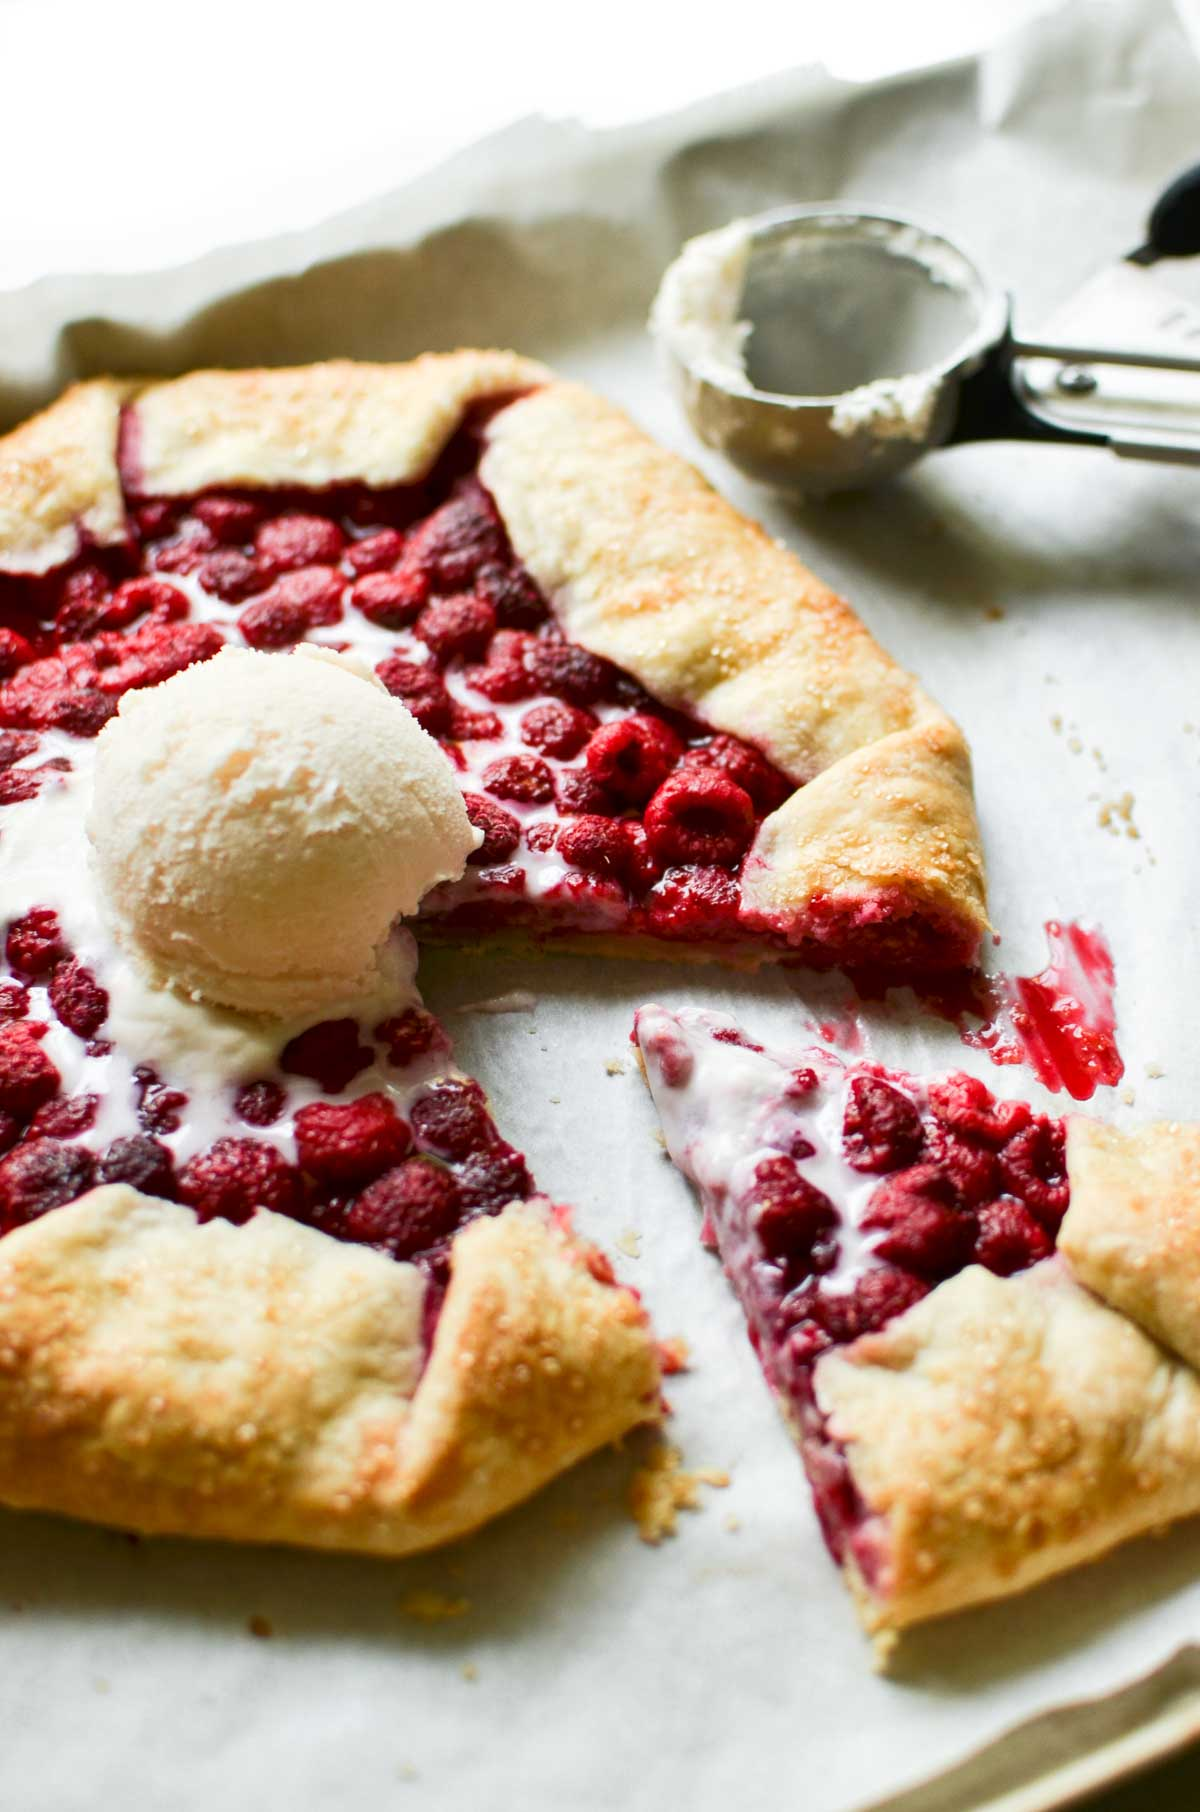 Fresh raspberry galette on a baking sheet with ice cream scoop